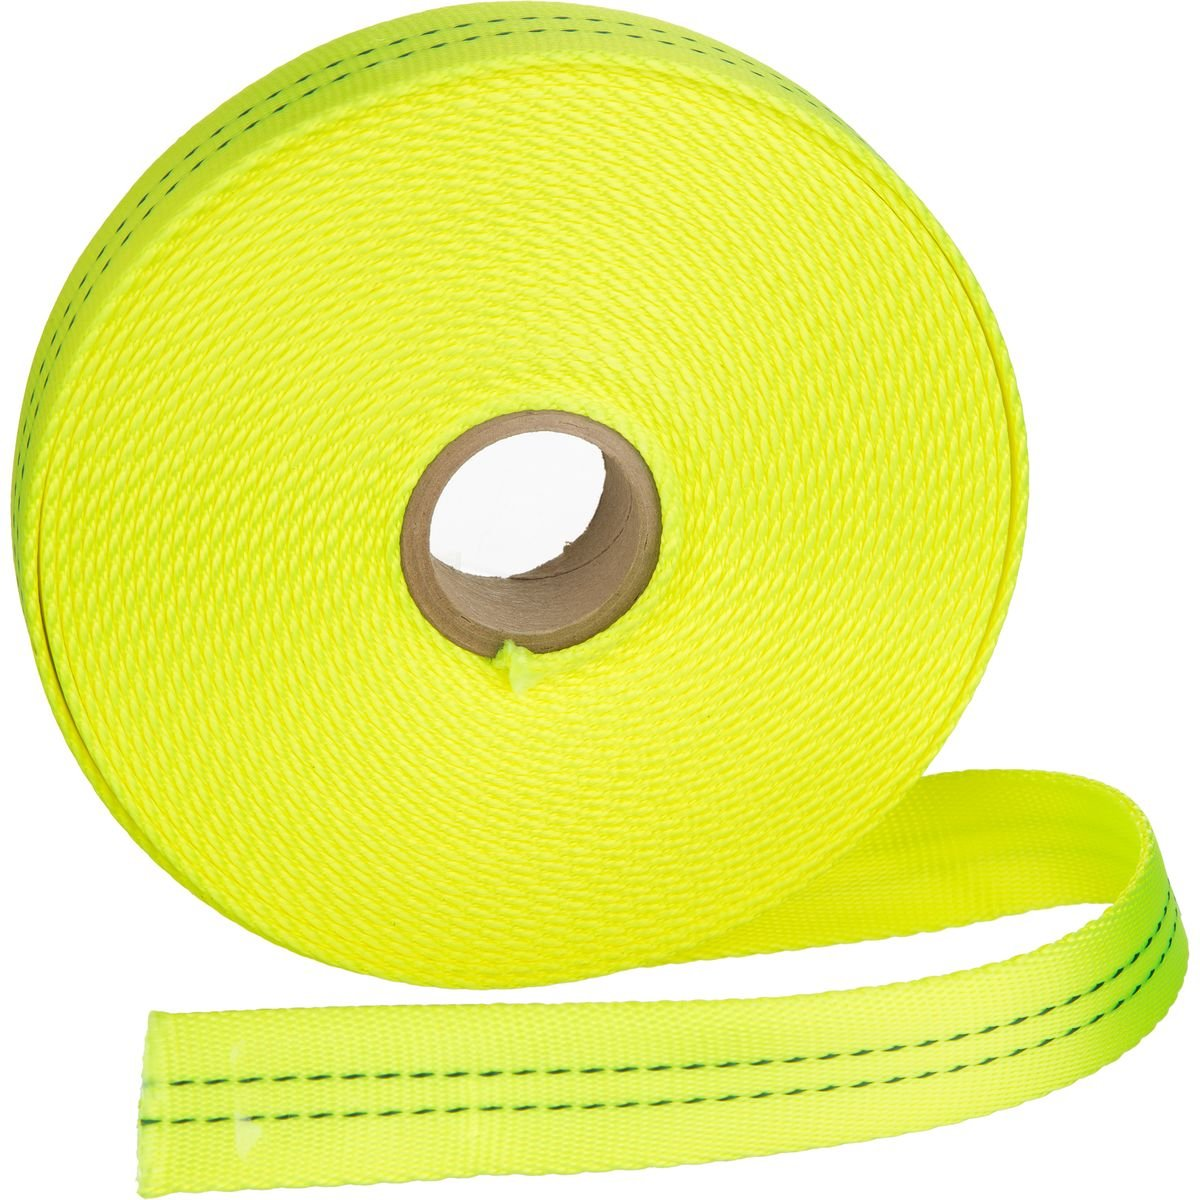 Sterling Tech Tape Web Wheel Yellow, 91m by Sterling